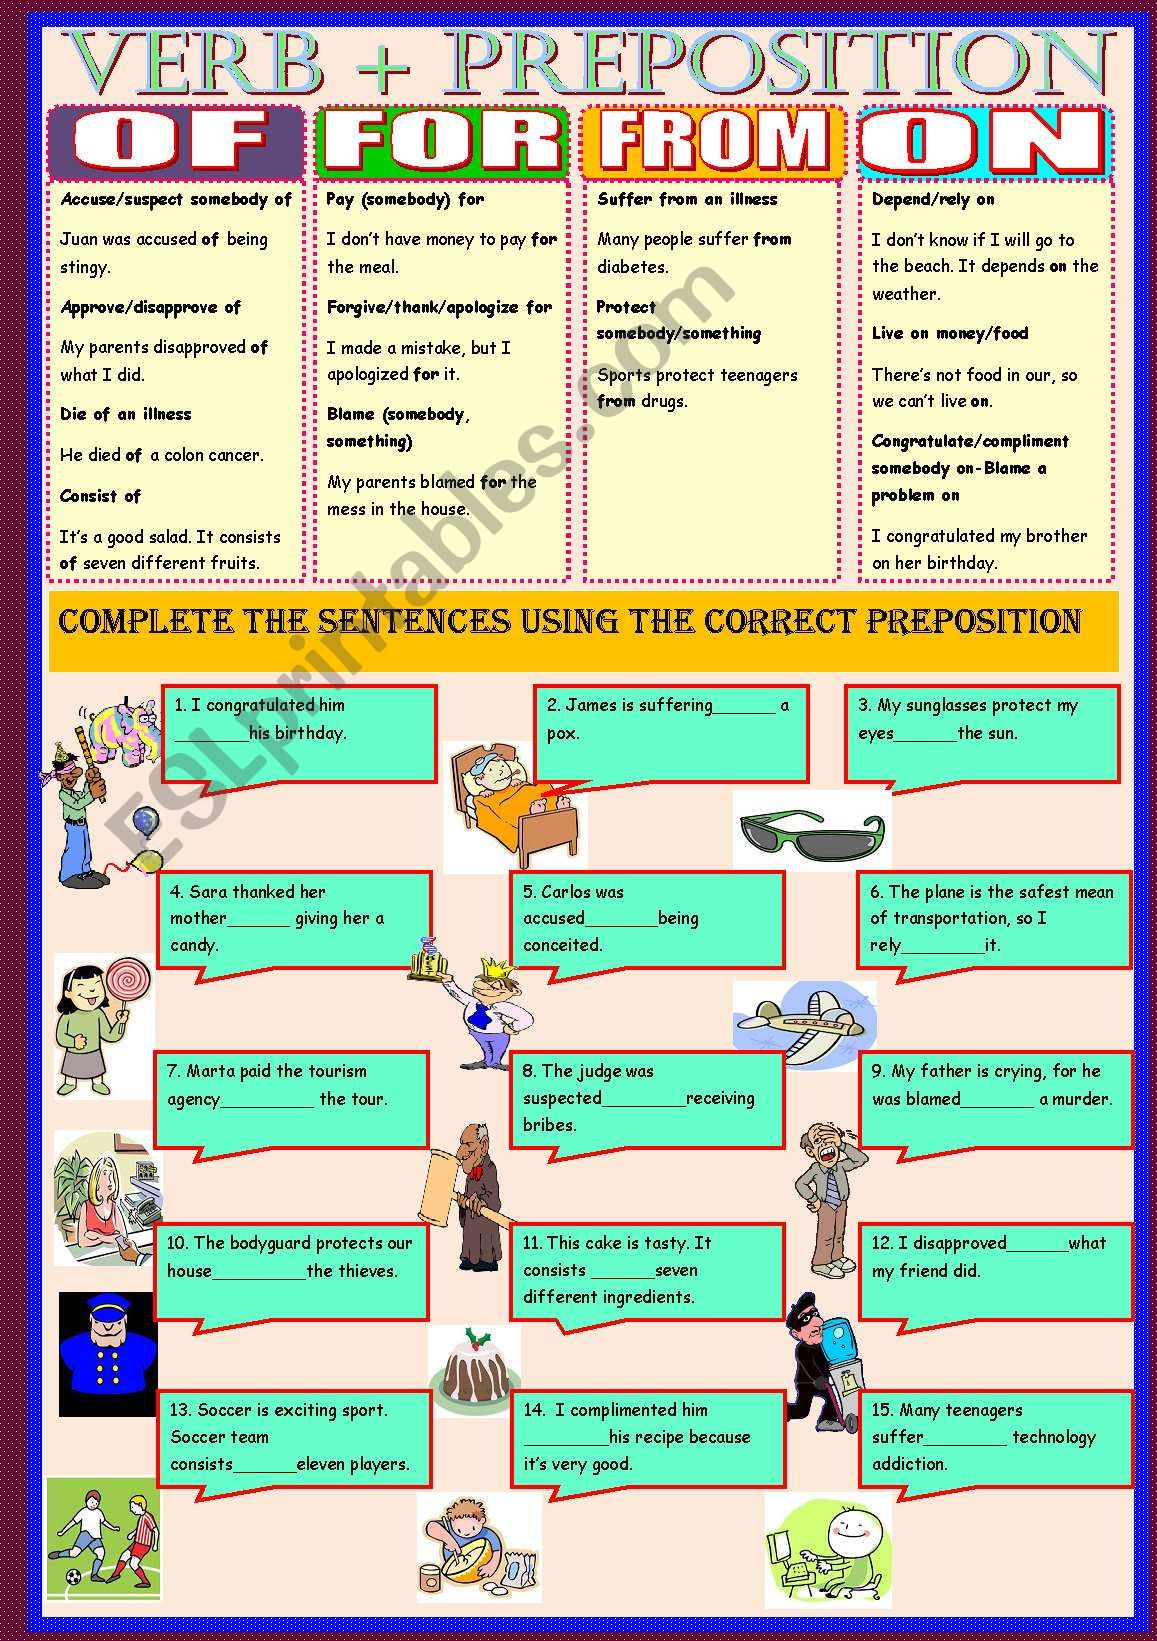 Verbs Preposition Of For From On